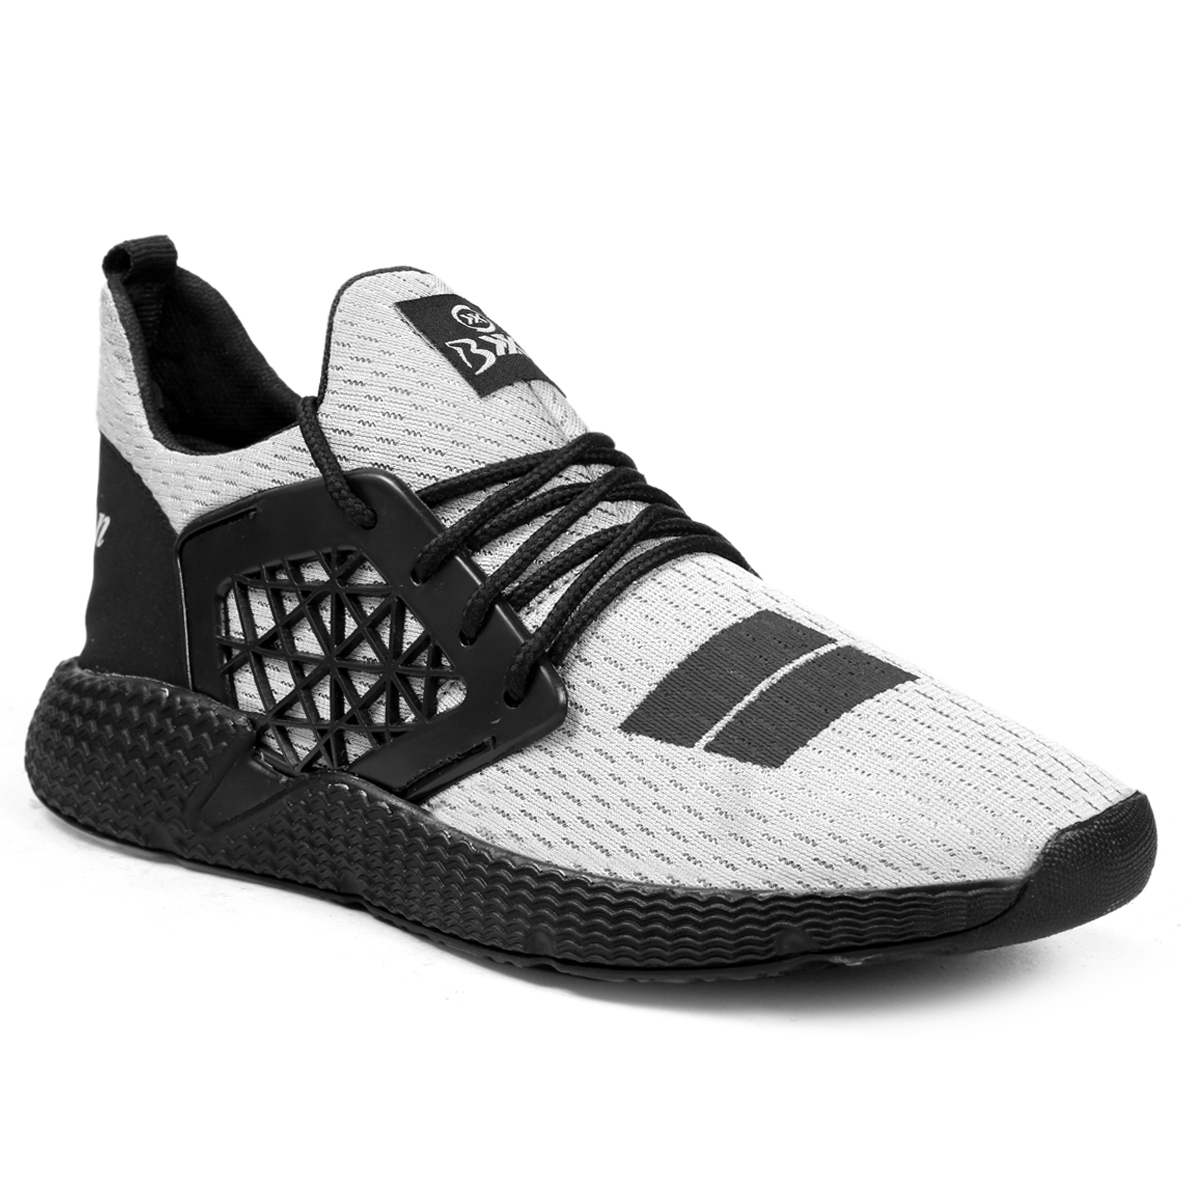 2019 MEN`S HIGH FASHION FLEXIBLE SPORTS SHOES ON PHYLON SOLE